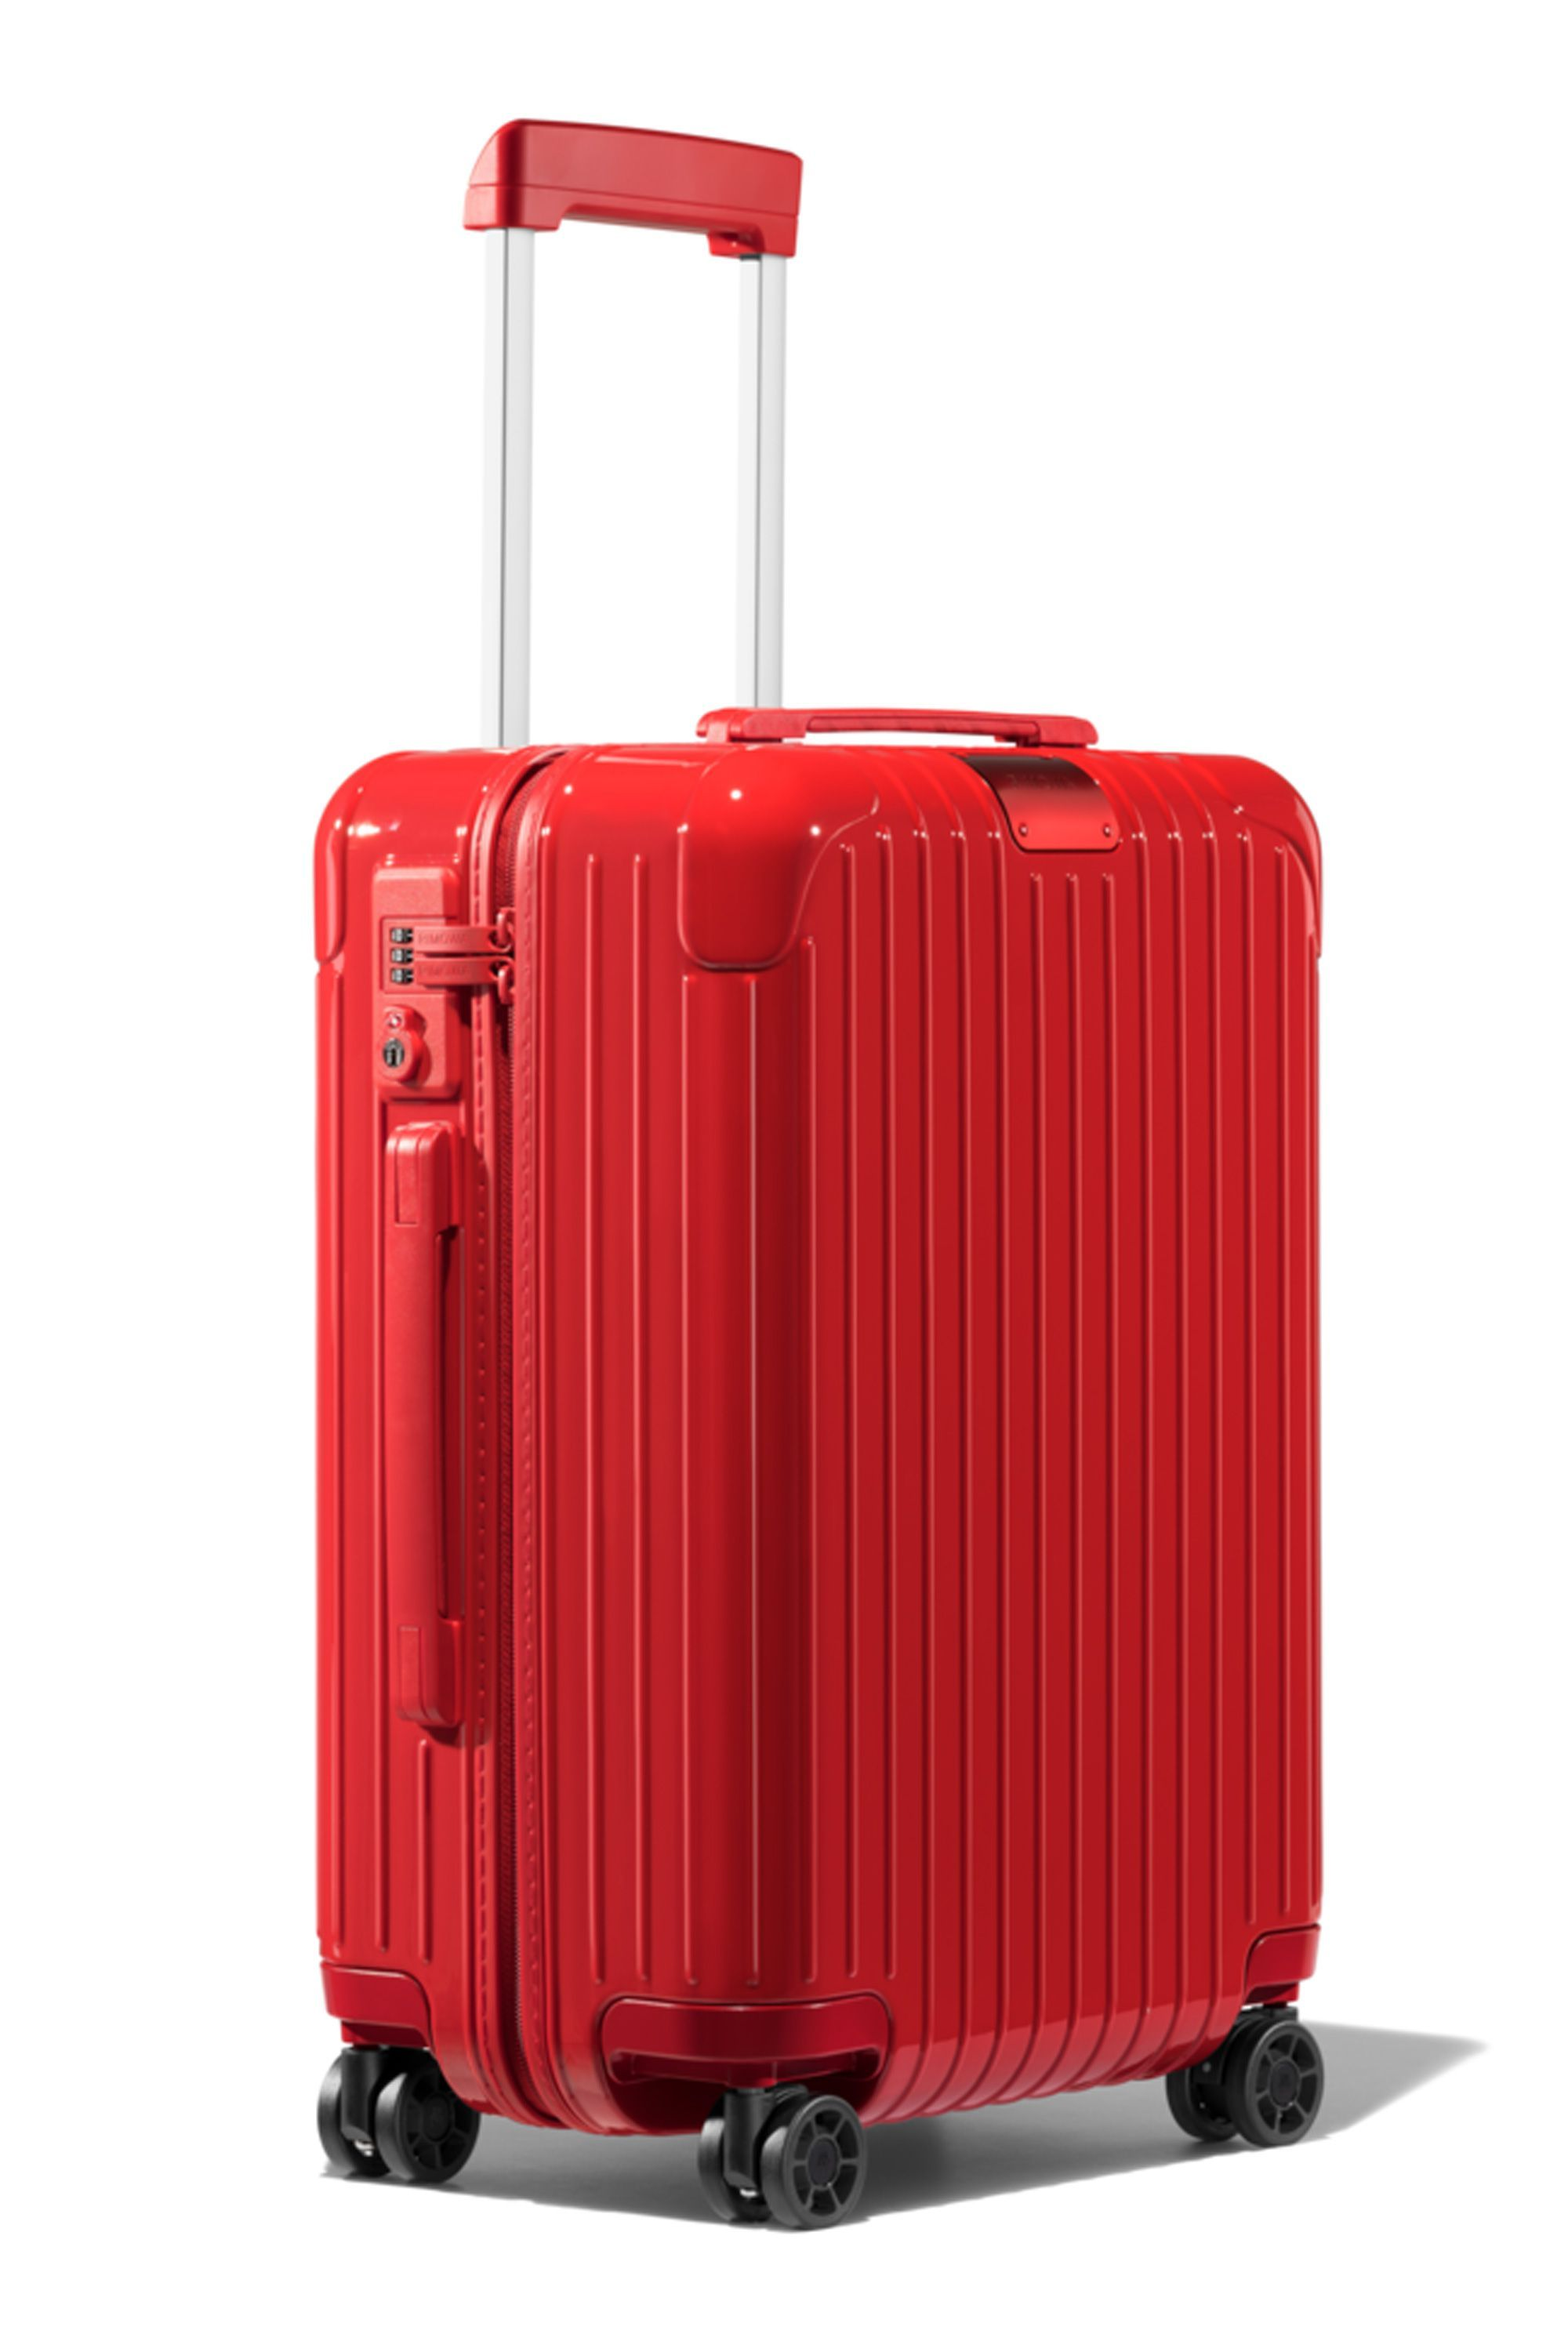 Essential Cabin Rimowa bloomingdales.com $700.00 SHOP NOW She travels more than anyone you know. And can never find her suitcase at baggage claim more than anyone you know.